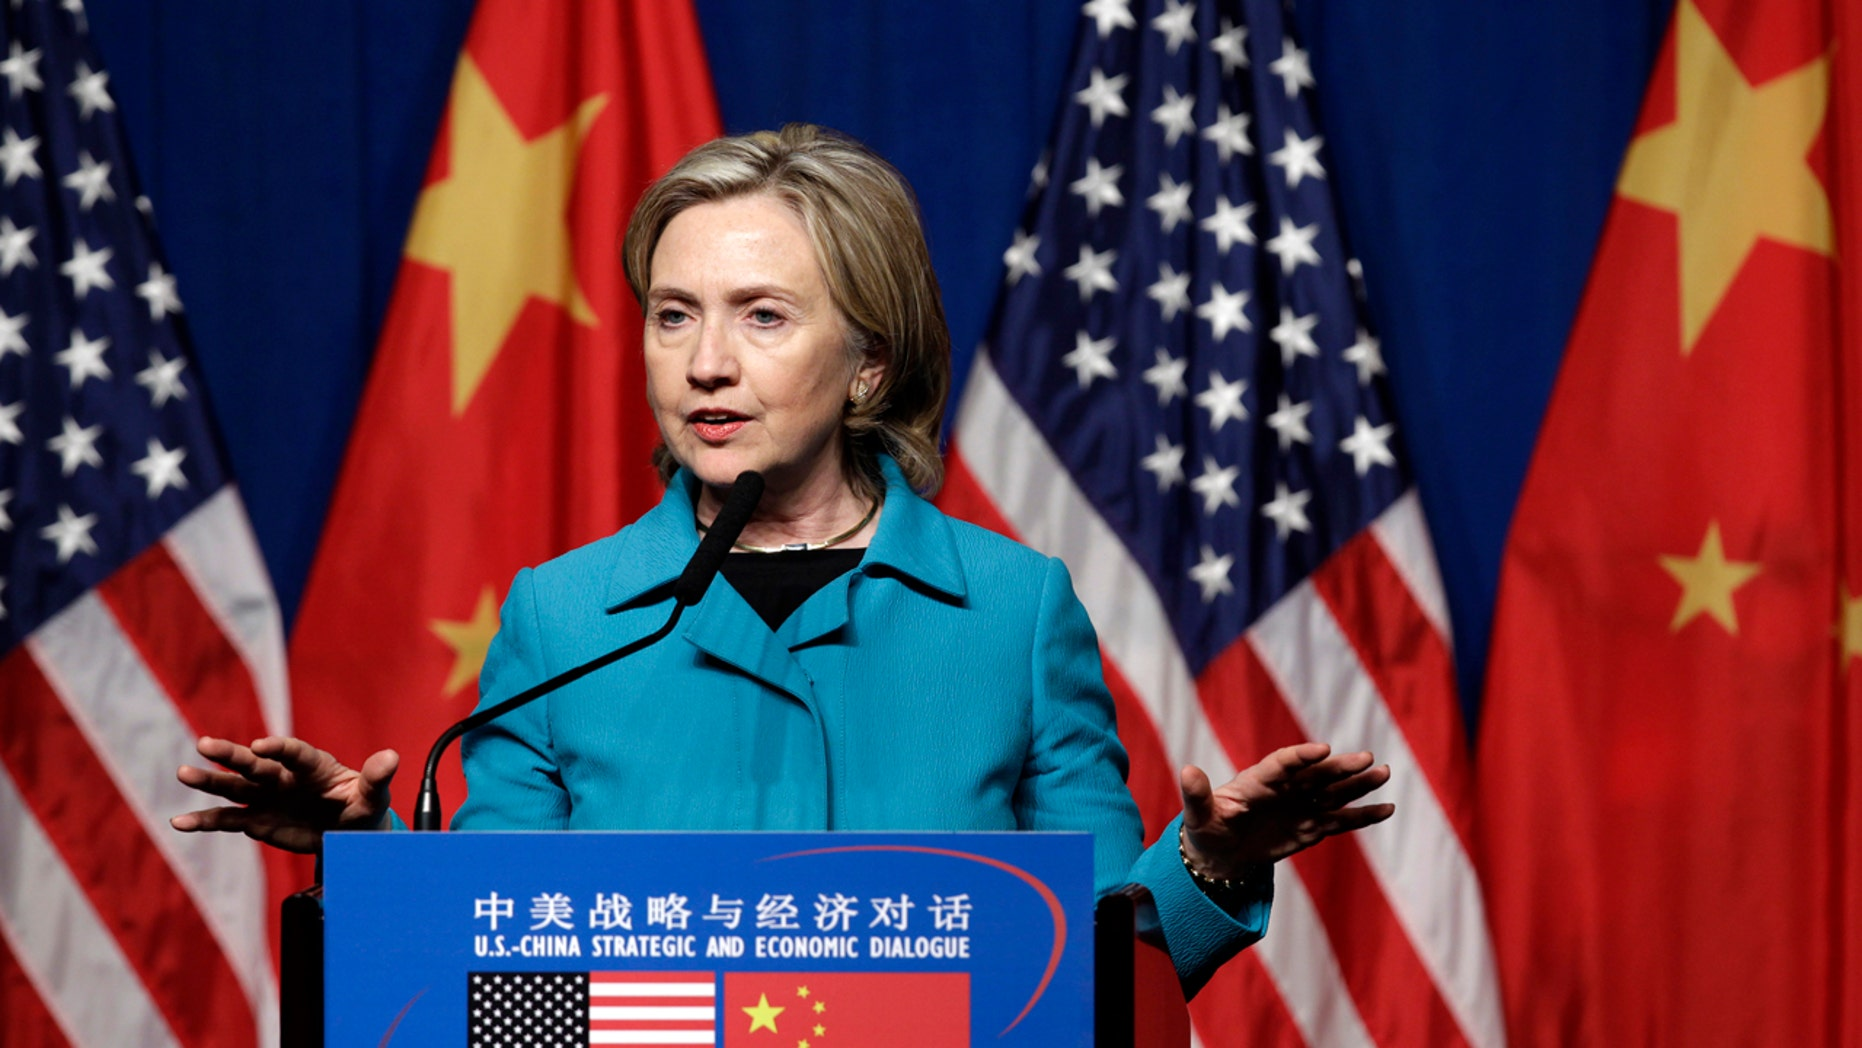 May 25, 2010: U.S. Secretary of State Hillary Clinton answers a question at a news conference after the U.S.-China Strategic Economic Dialogue in Beijing.